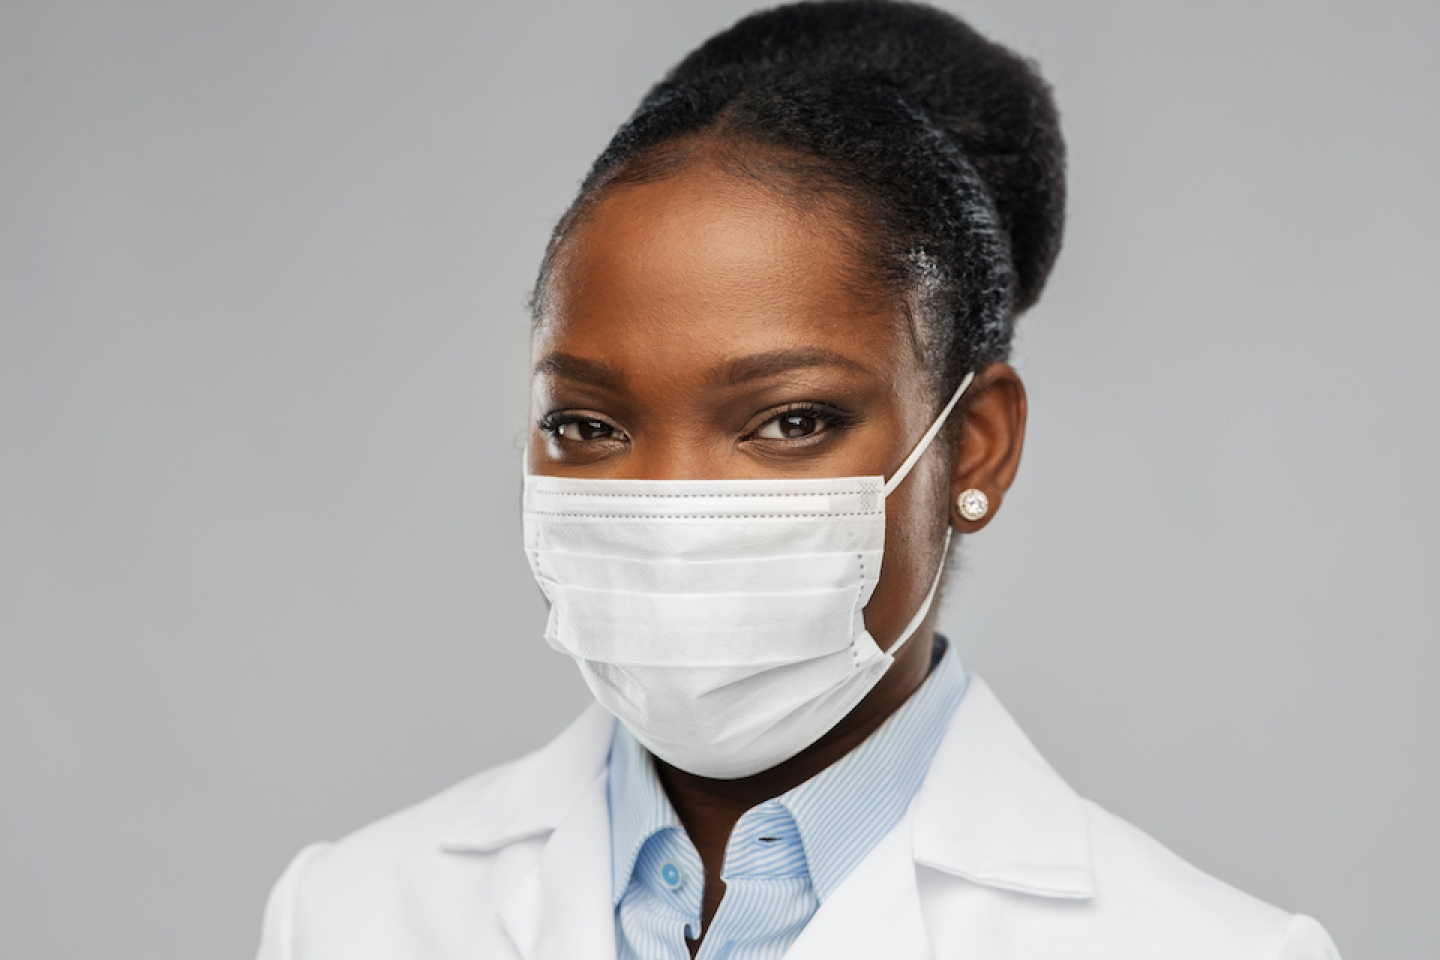 black women doctor with mask on